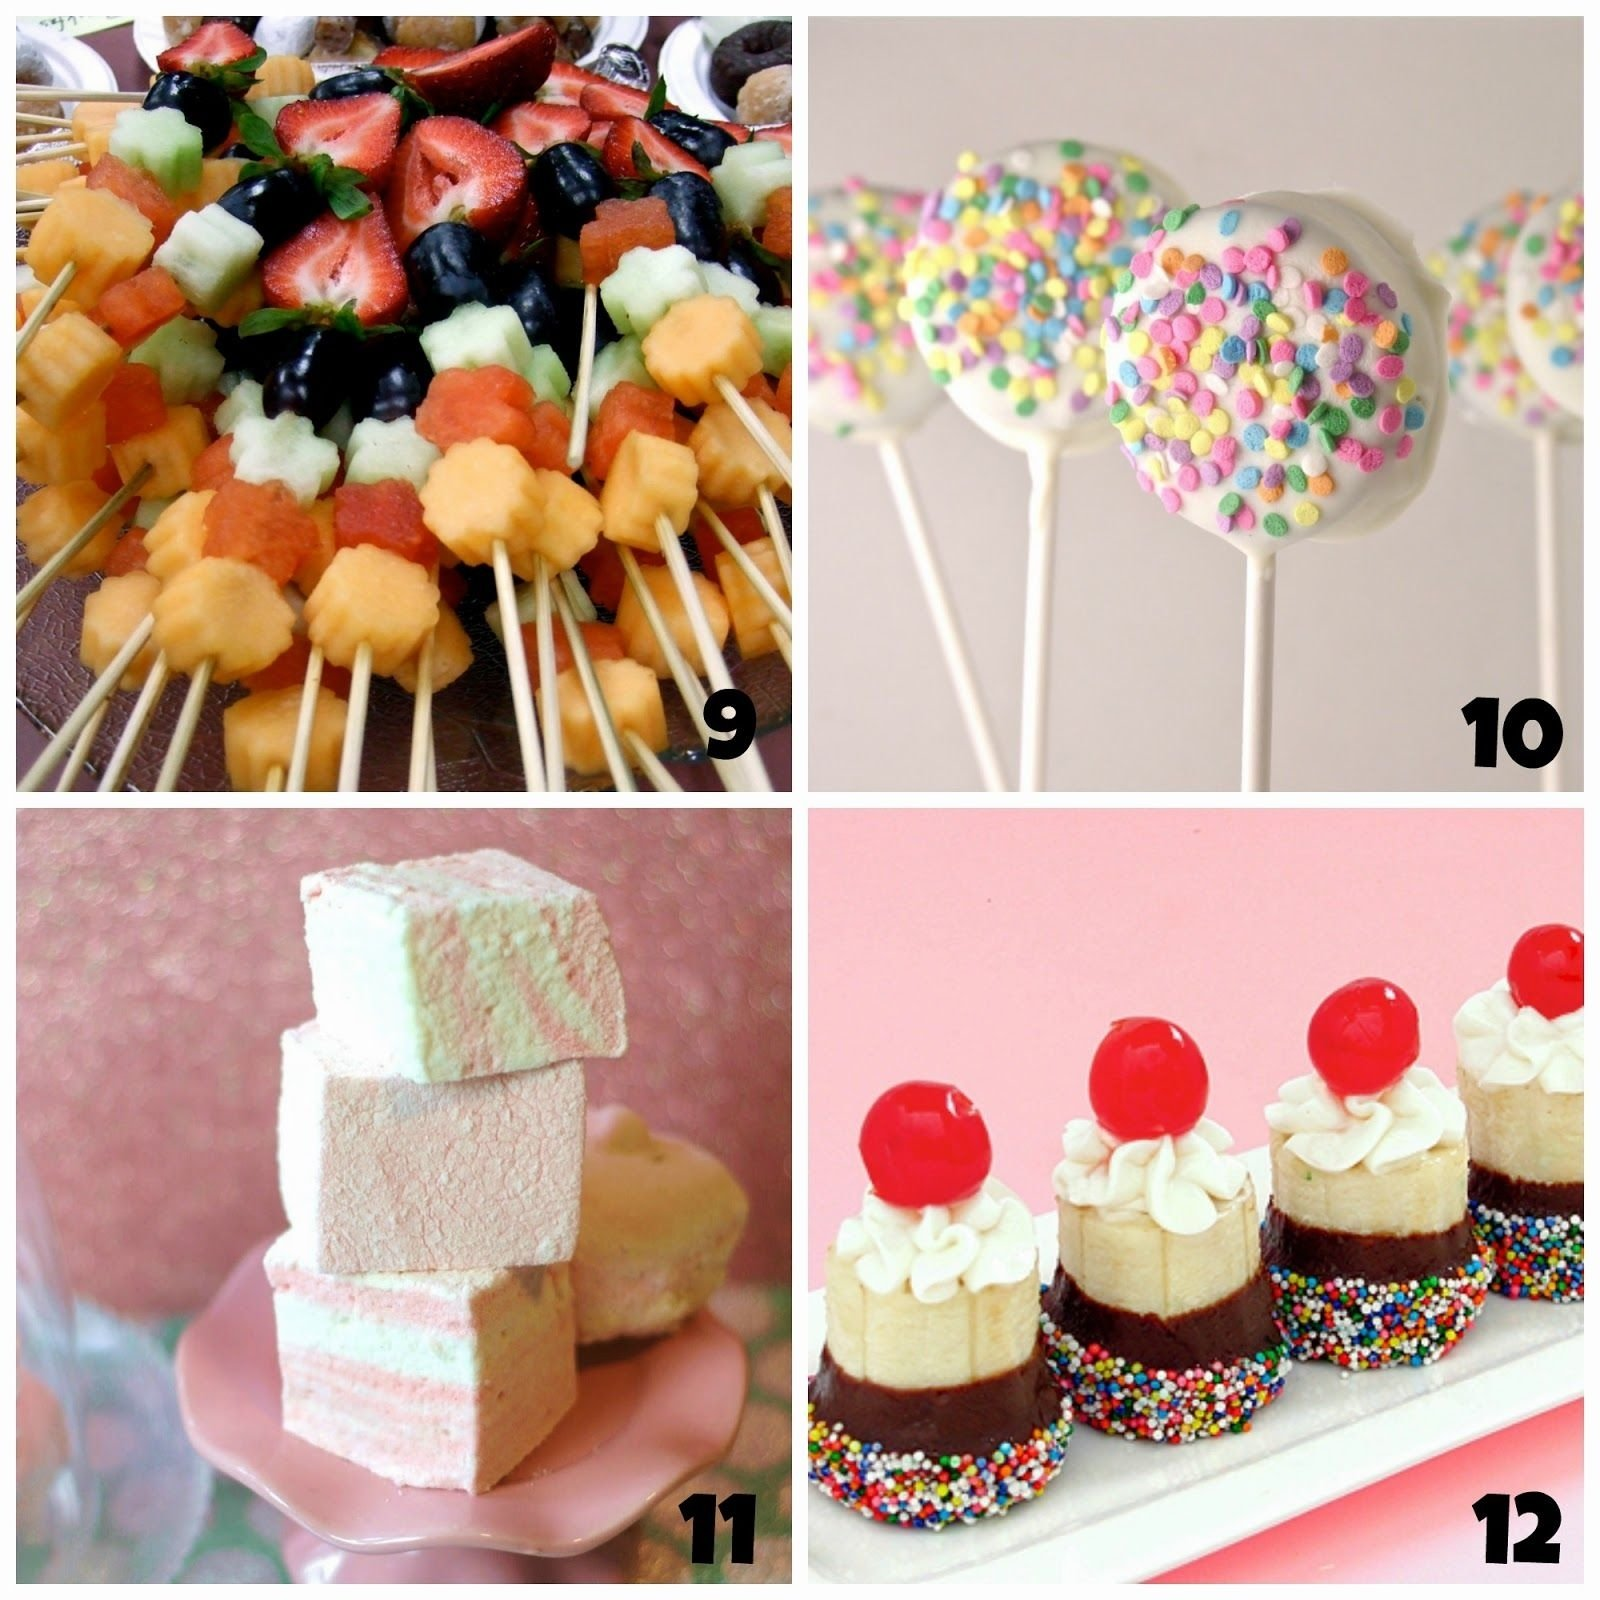 10 Stunning Birthday Food Ideas For Kids party fun for little ones recipes to try this week pinterest 2020